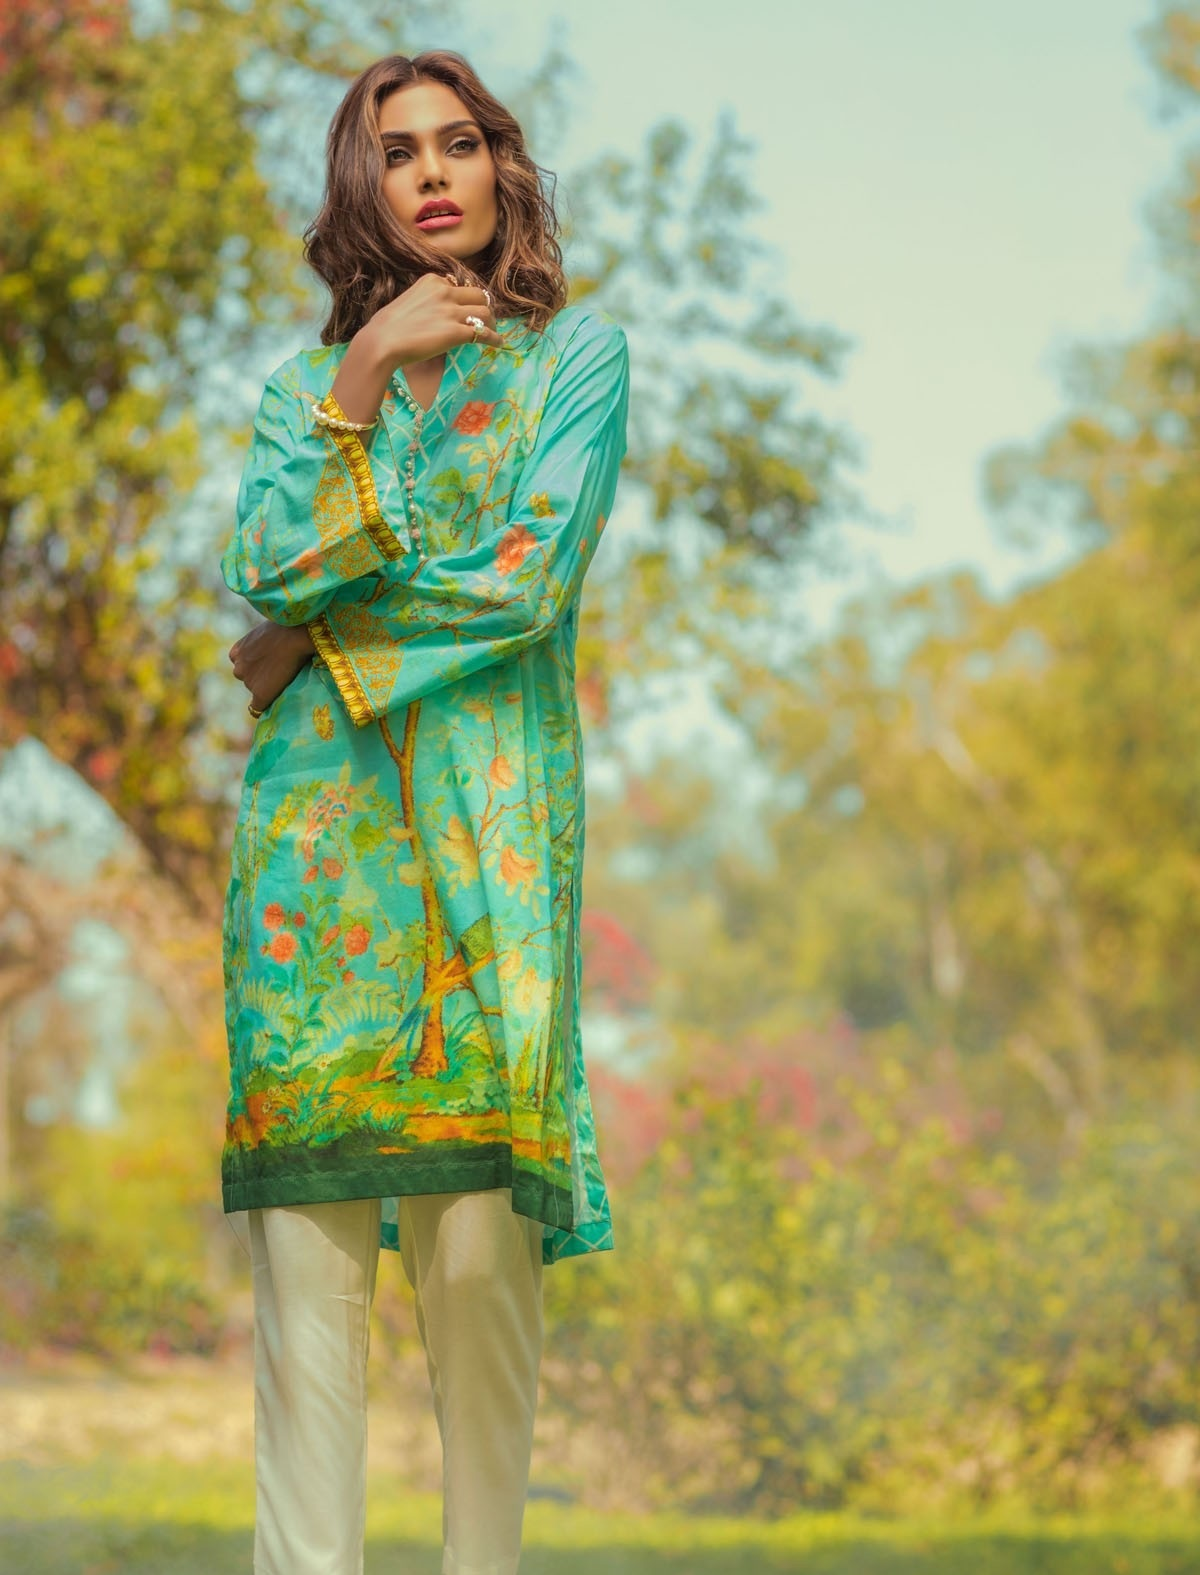 b059c49b424d New Arrival of Summer Dresses 2018 Pakistani Lawn Collection for Girls